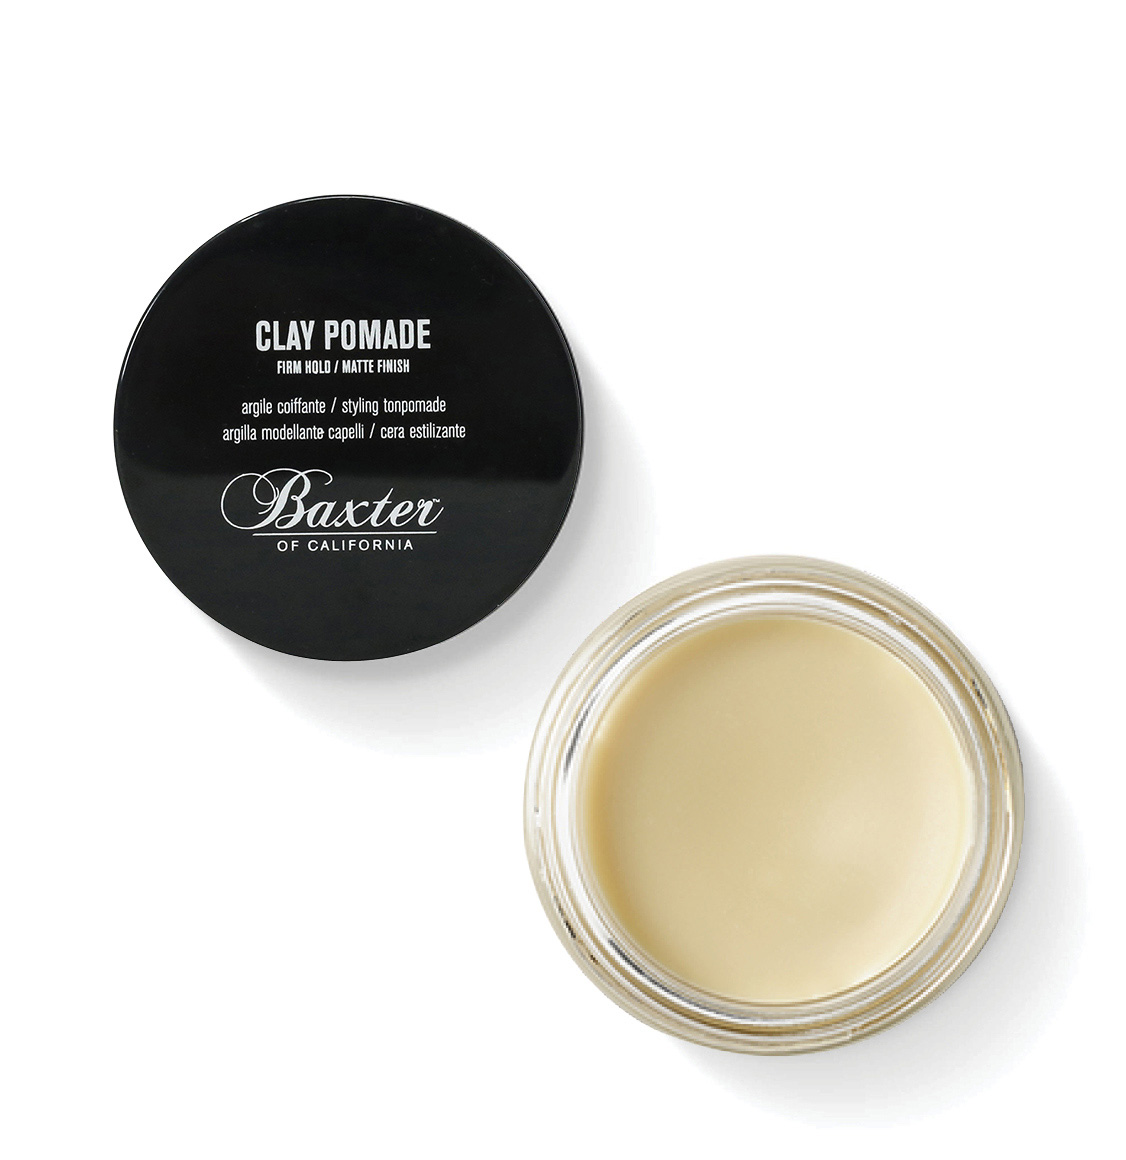 Baxter of California Hair Styling Clay Pomade 60ml | Πομάδα Για Μαλλιά